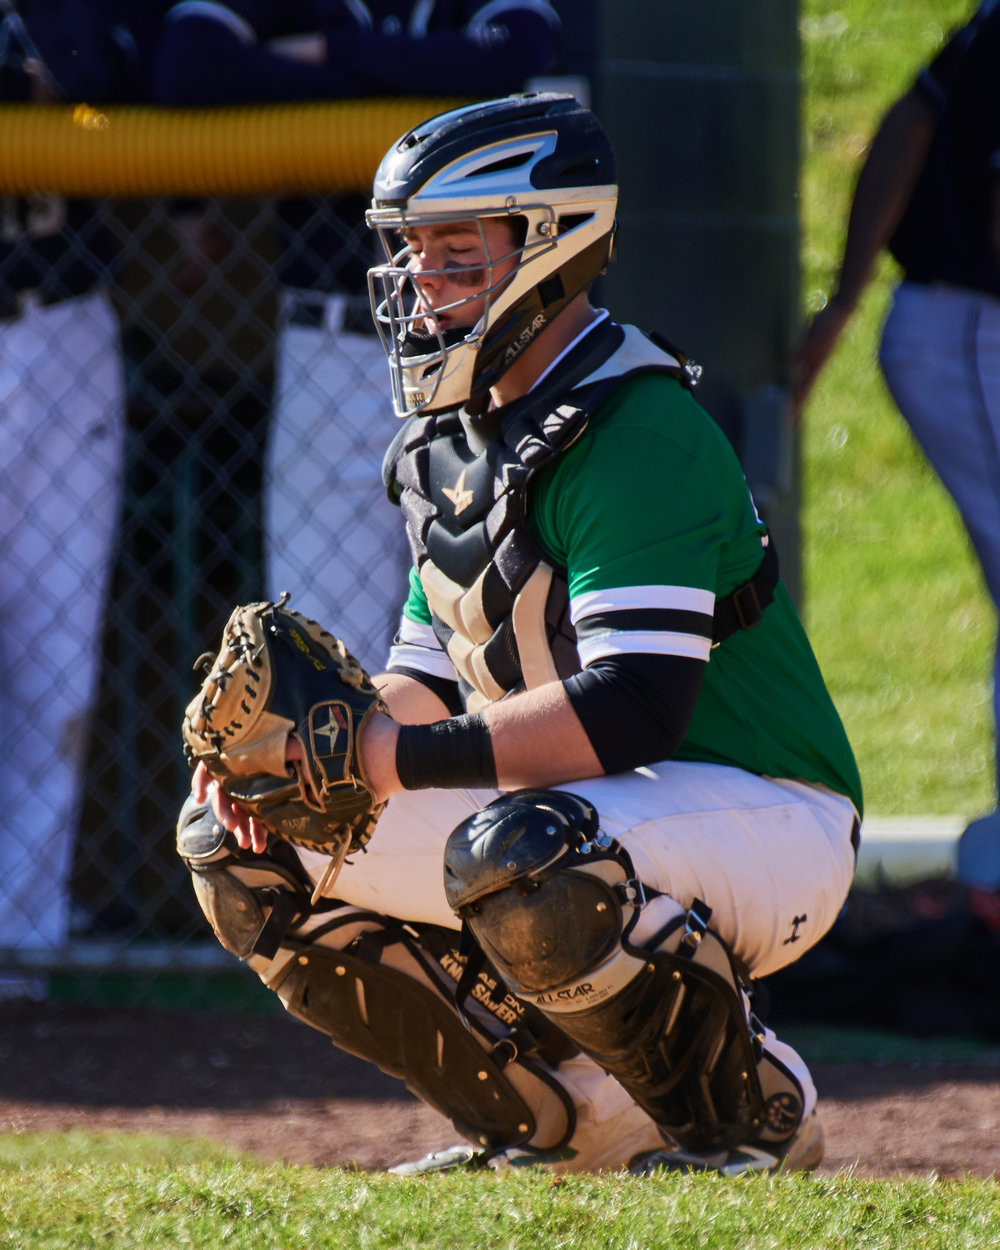 Pascack-Valley-HS-Varsity-Boys-Baseball-2017--0042.jpg